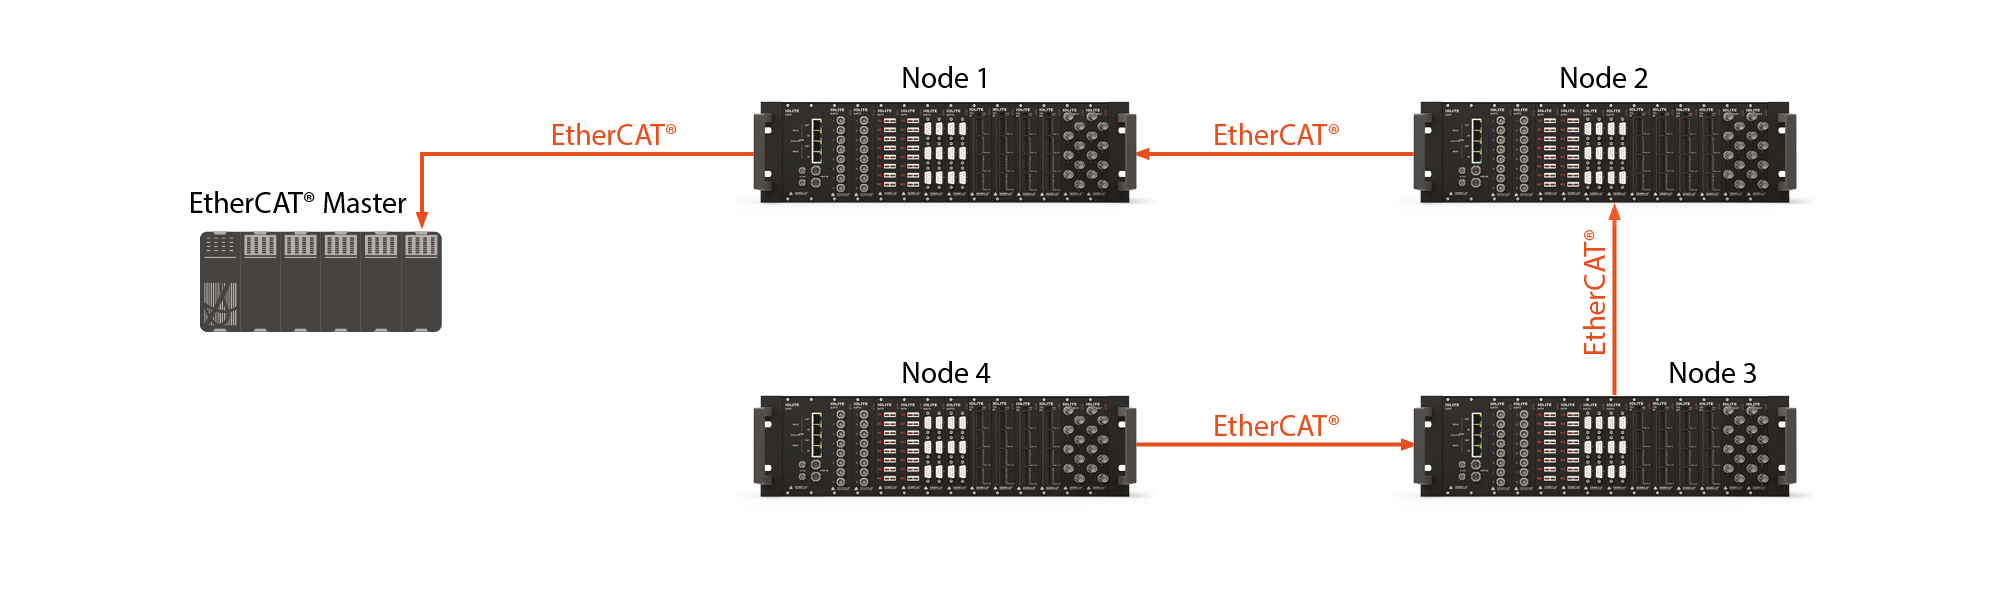 Highly fault tolerant EtherCAT network